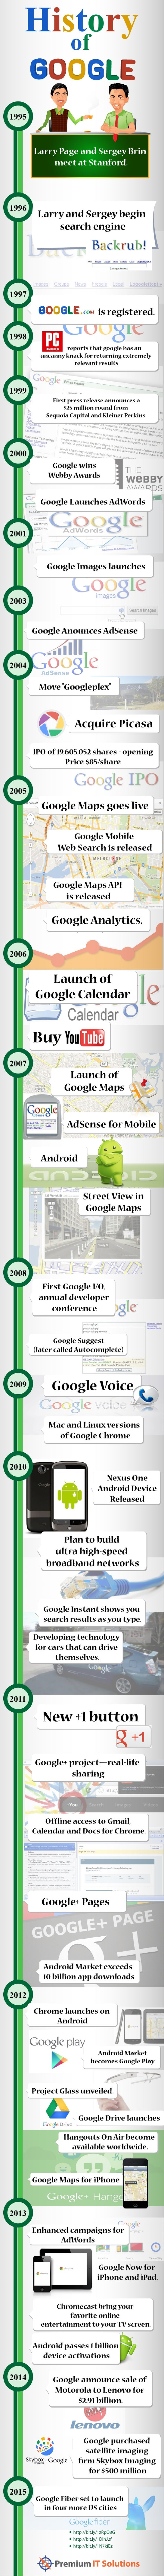 History of Google Infographic